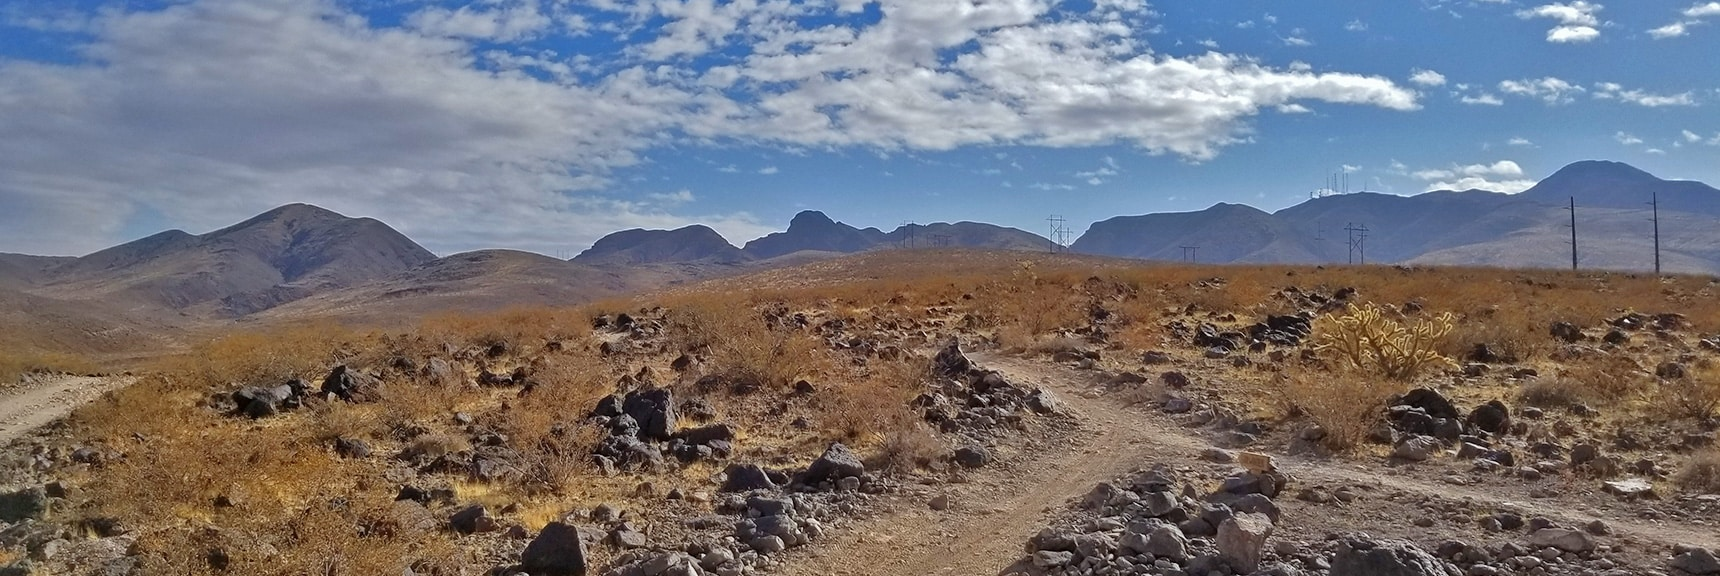 View Back Up the Trail from Near Anthem   McCullough Hills Trail in Sloan Canyon National Conservation Area, Nevada